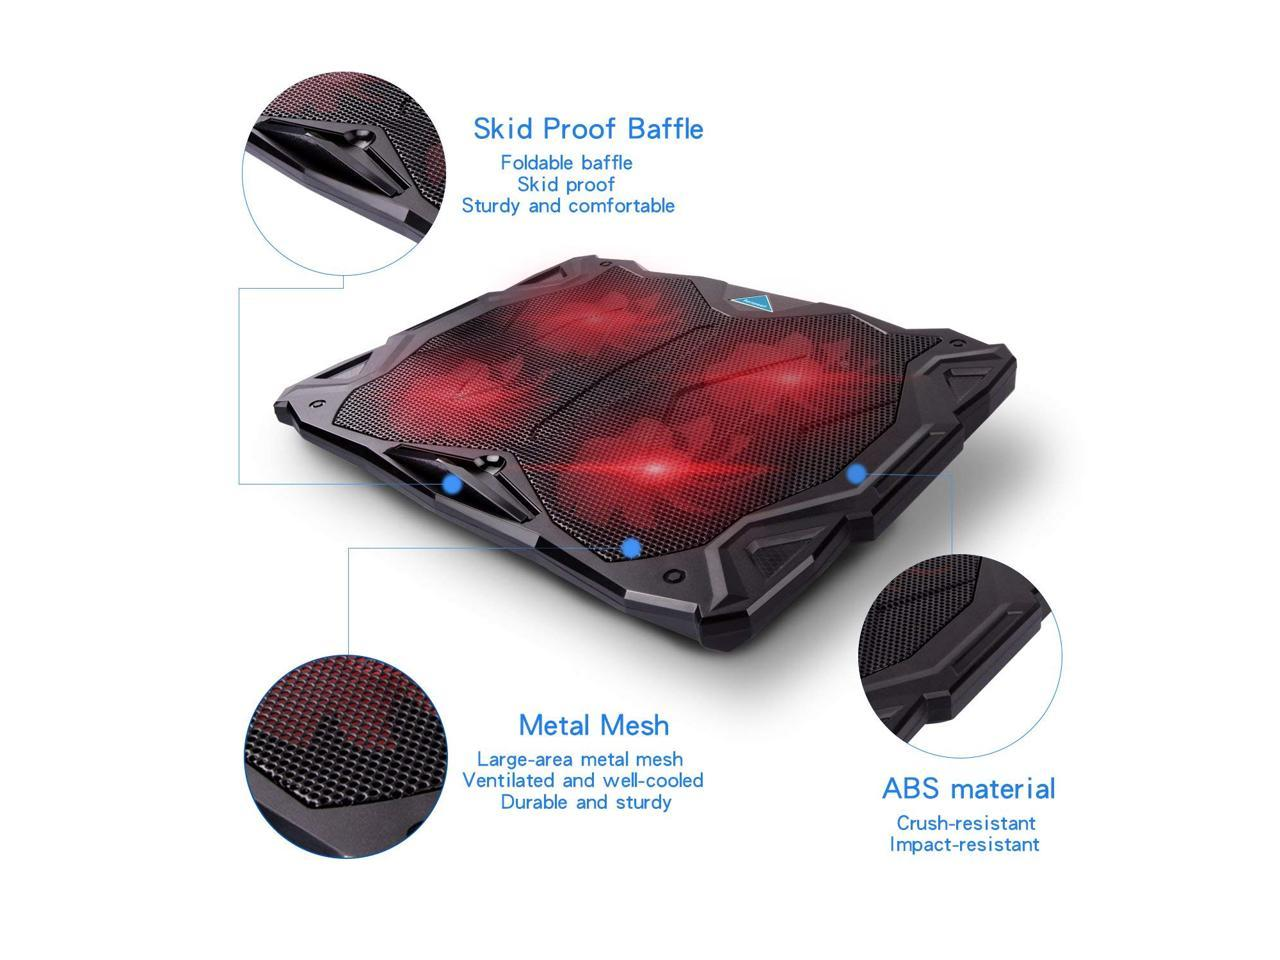 Fits 11-17 Inches Portable Ultra-Slim Quiet Laptop Notebook Cooler Cooling Pad Stand with 4 USB Powered Fans Tenswall Laptop Cooling Pad